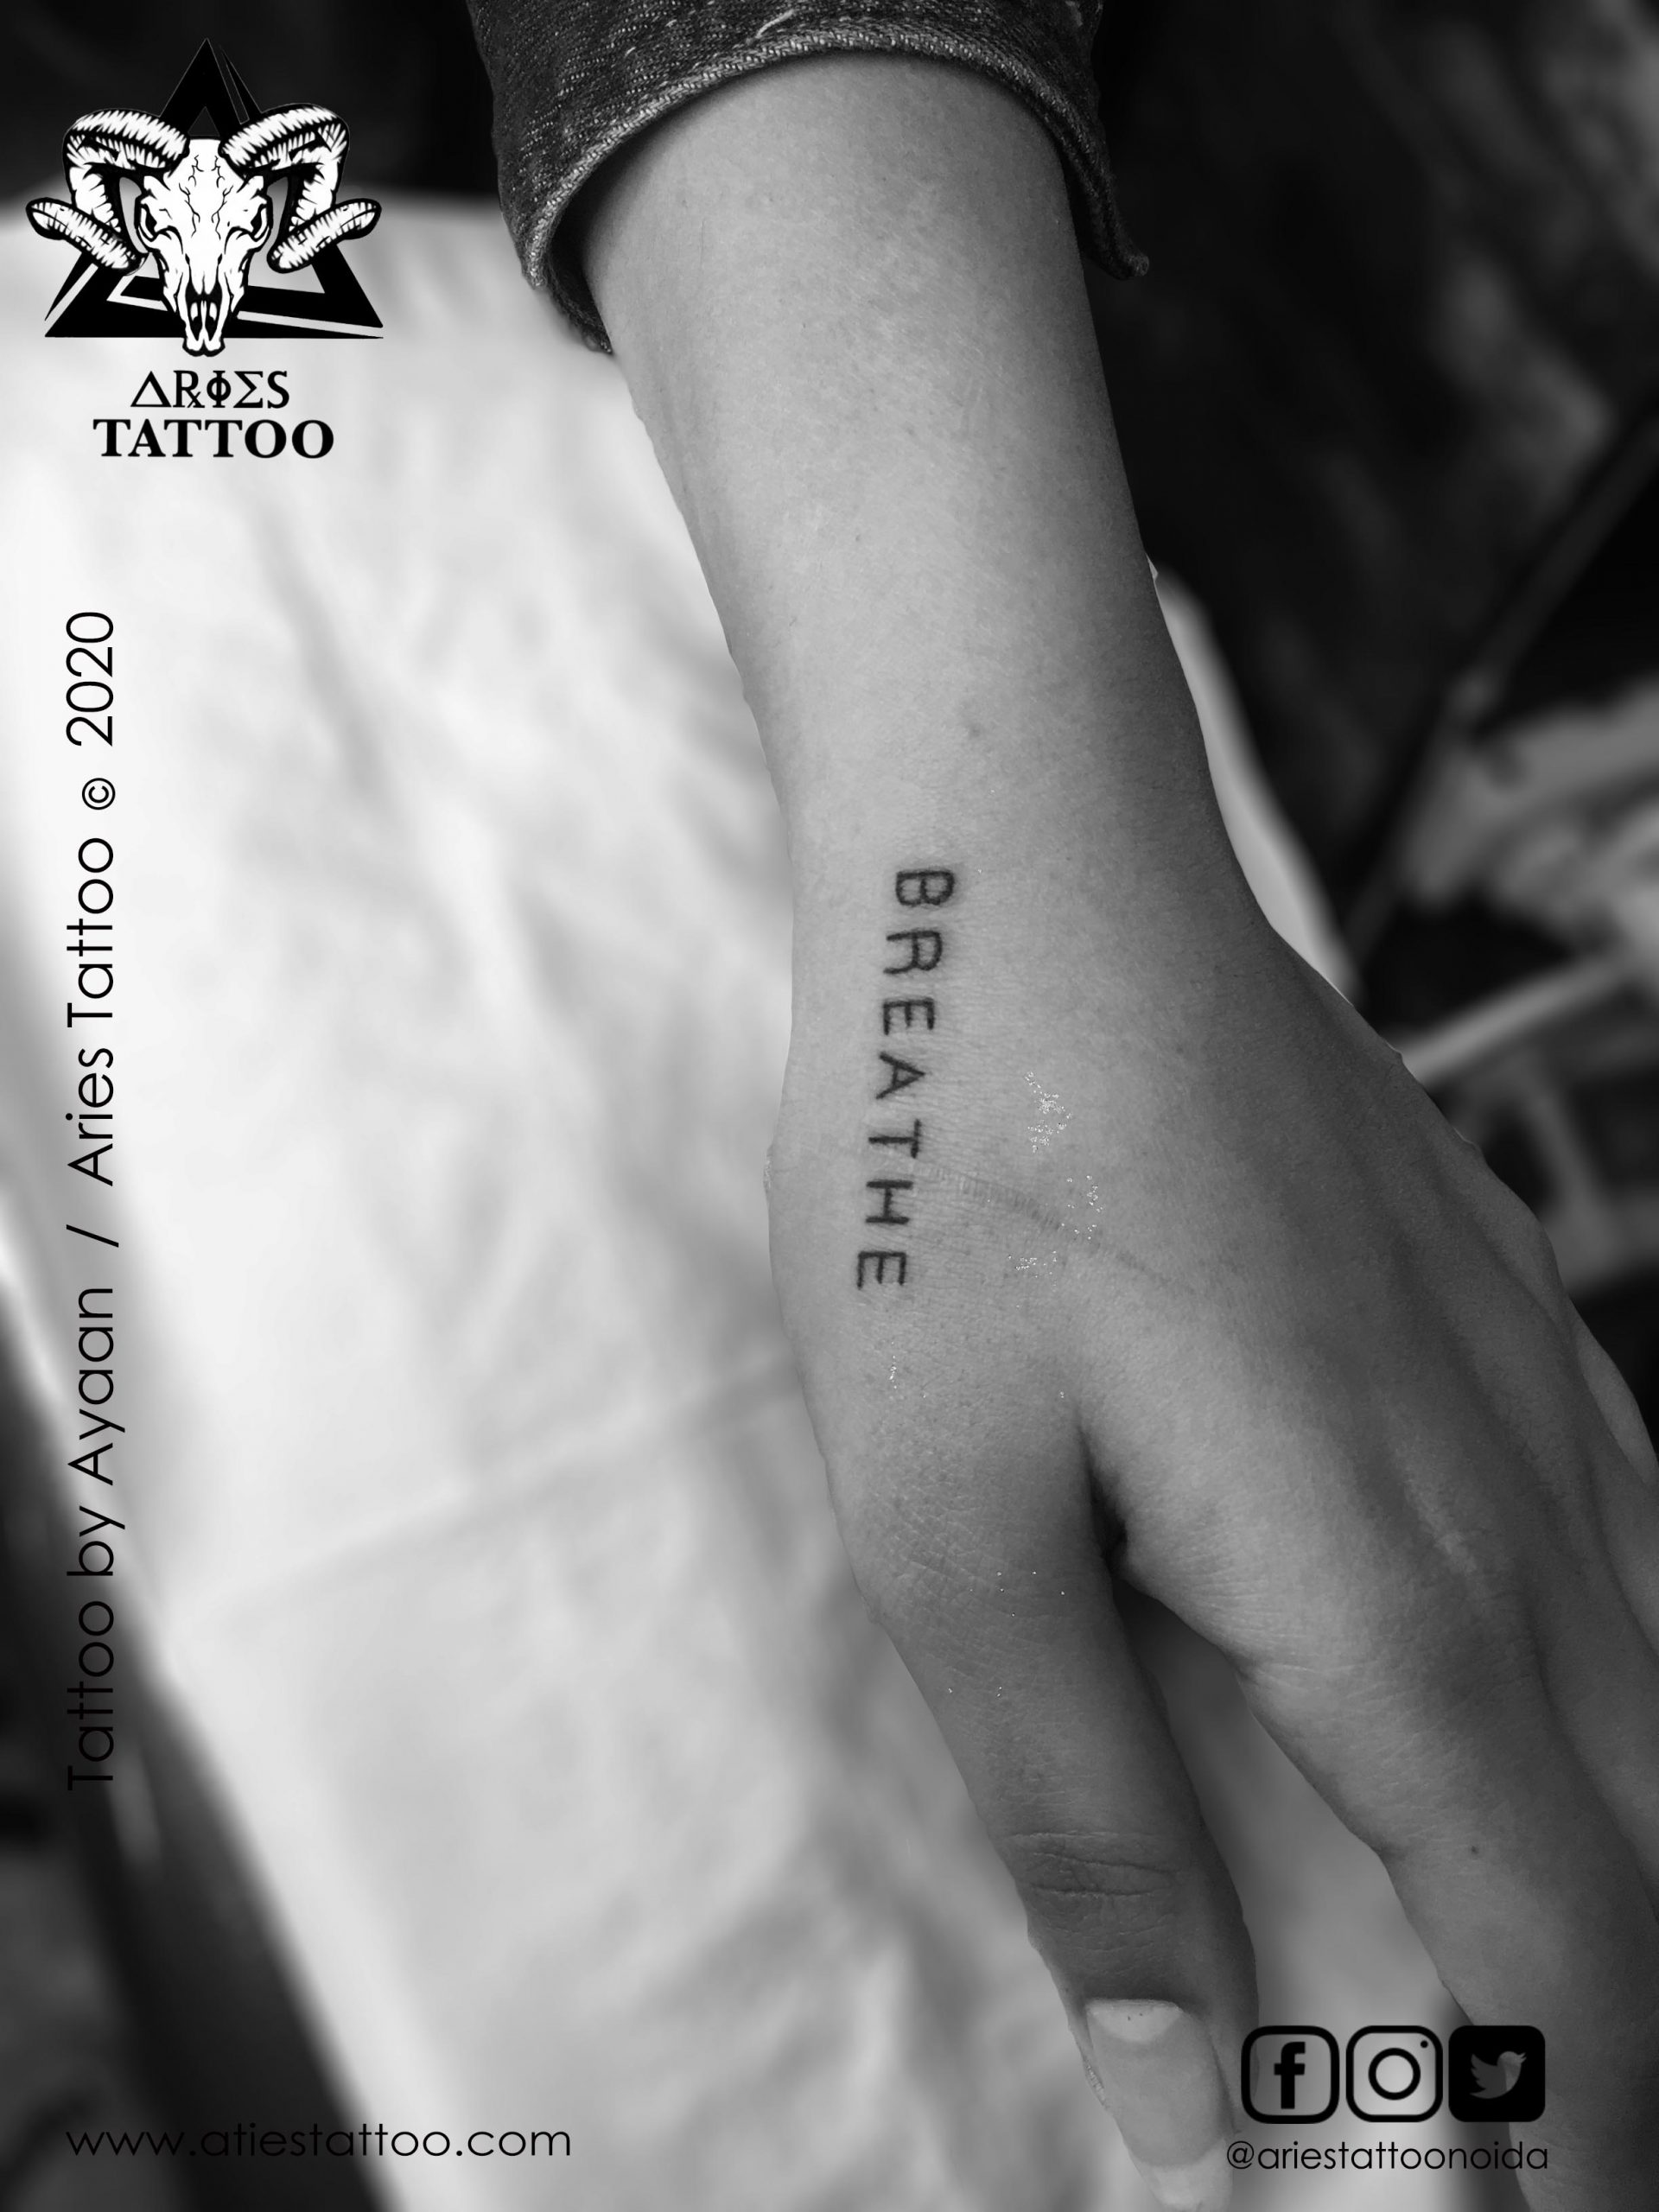 Breath Scripted Tattoo |Aries Tattoo Noida | Tattoo Shop and Studio In Noida